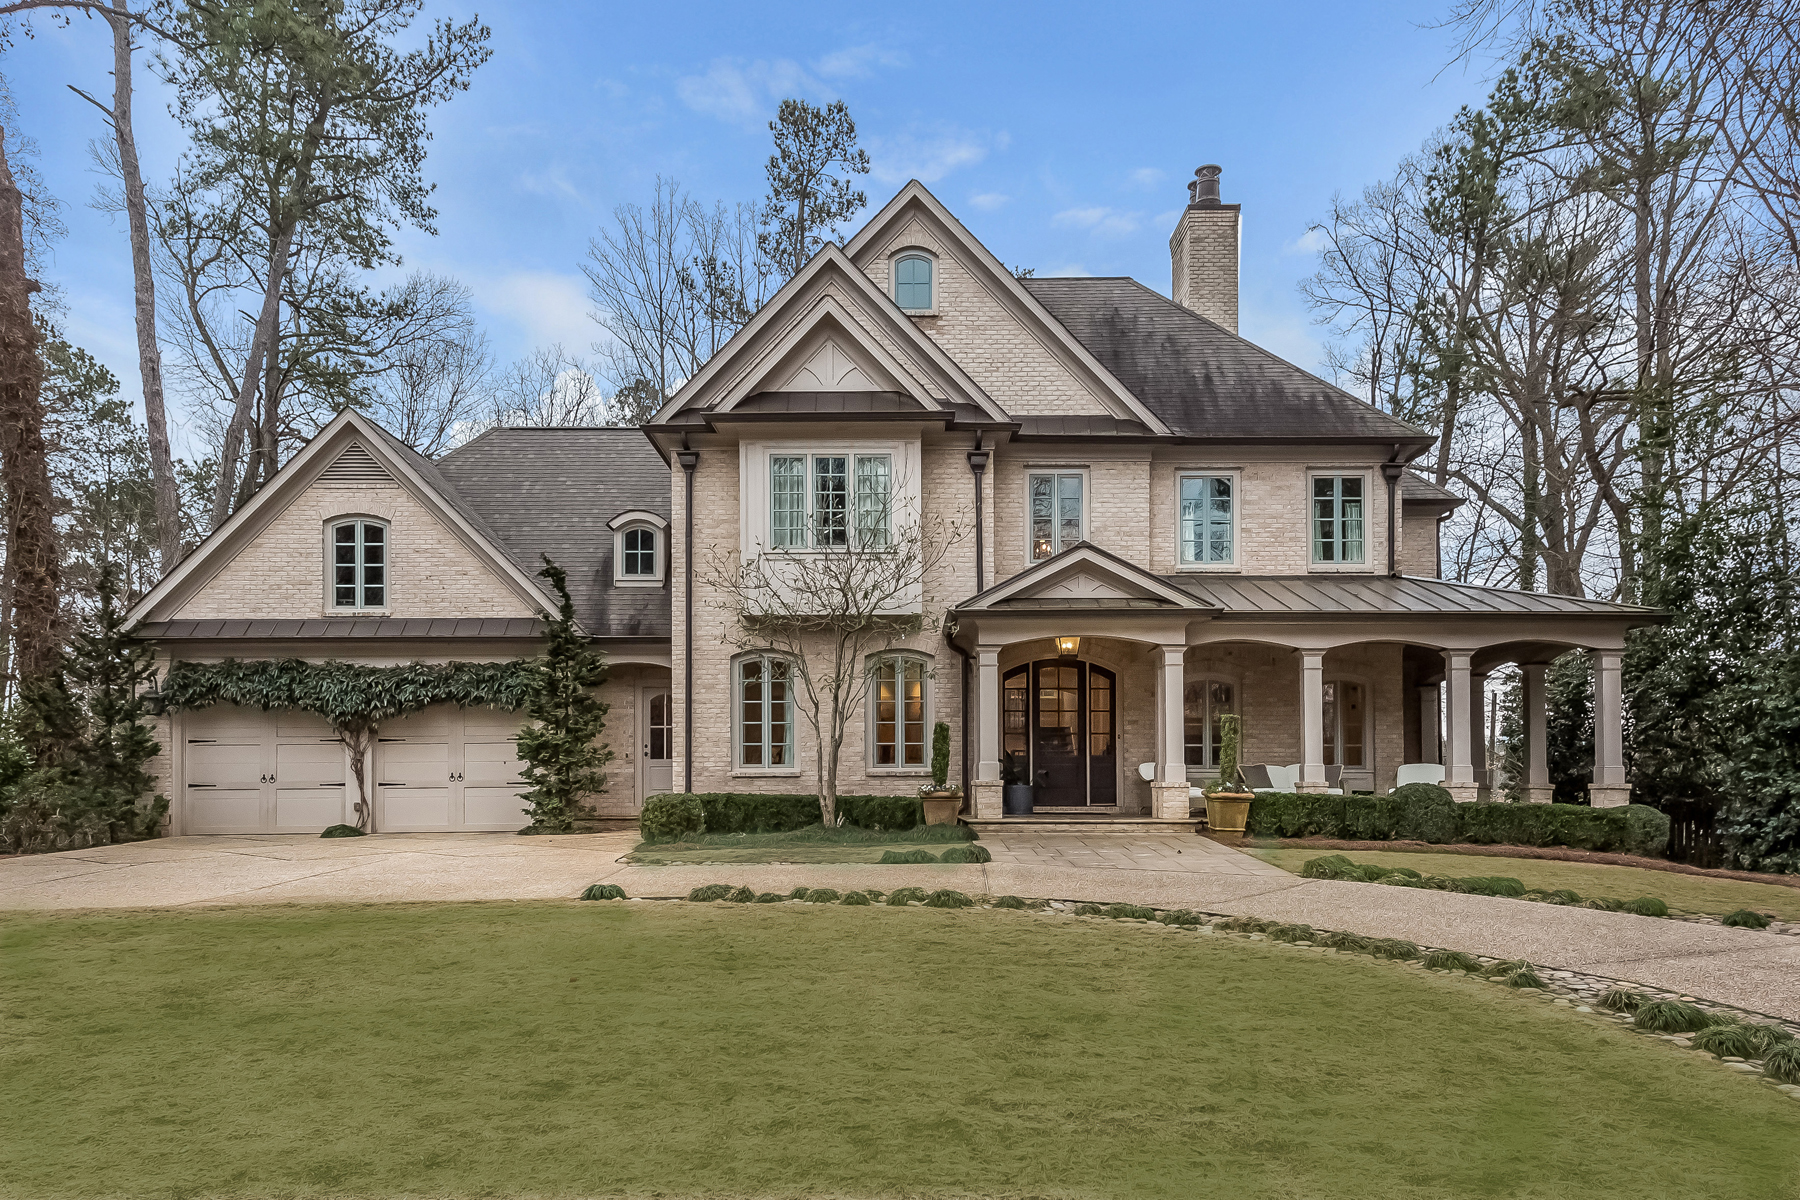 一戸建て のために 売買 アット Gorgeous Newer Construction Home in Chastain Park 210 Lake Forrest Lane NE Chastain Park, Atlanta, ジョージア, 30342 アメリカ合衆国